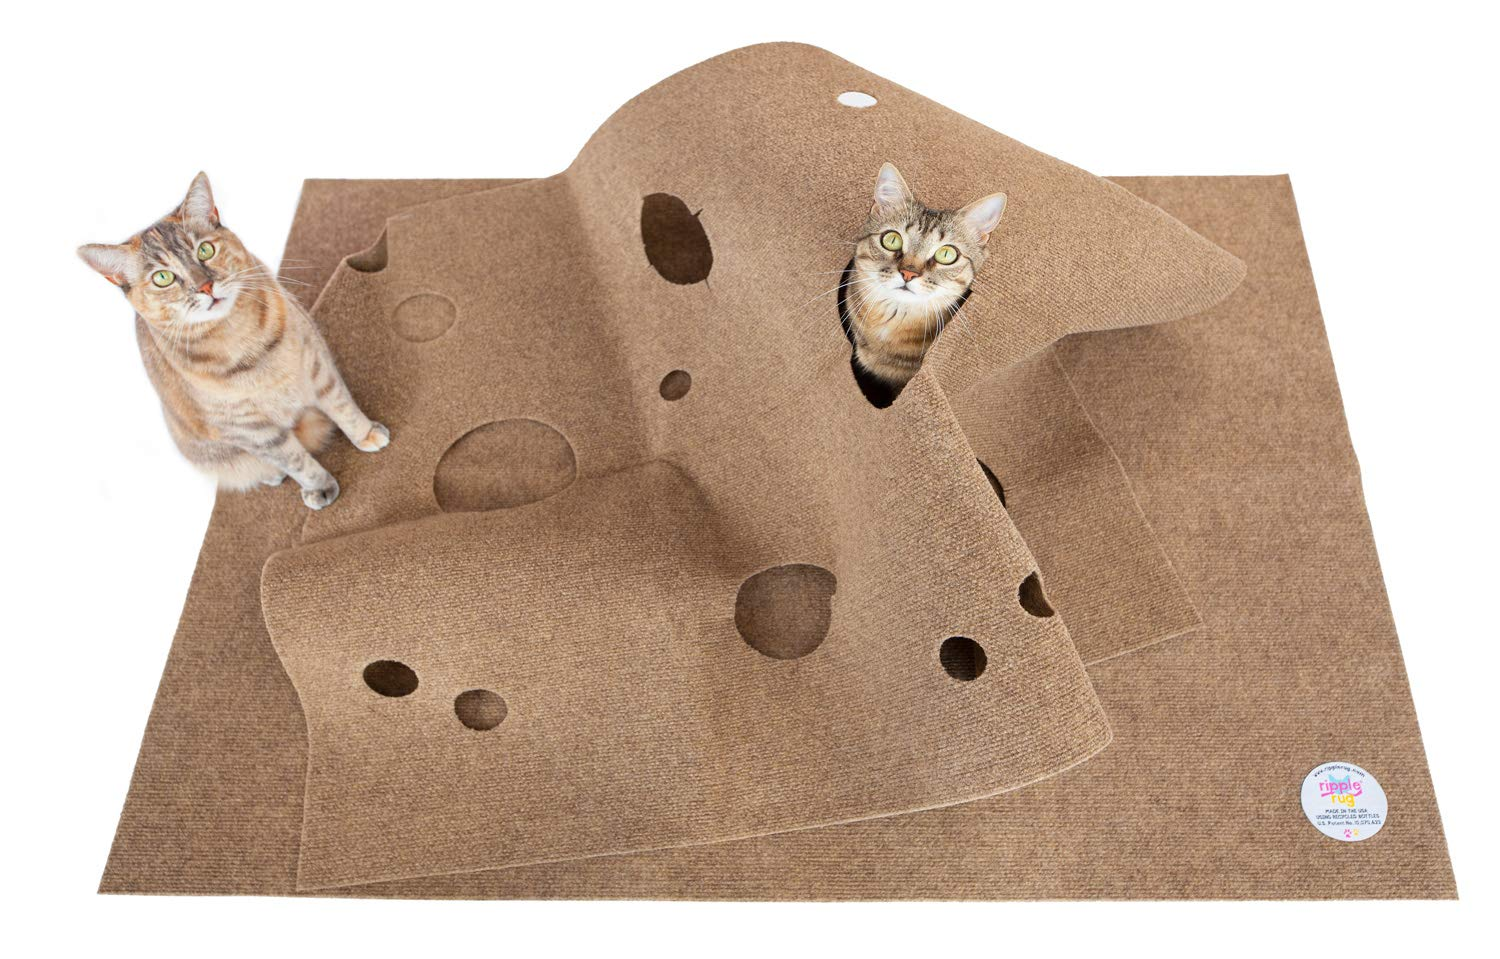 SnugglyCat The Ripple Rug - Made in USA - Cat Activity Play Mat - Thermal Base -Fun Interactive Play - Training - Scratching - Bed Mat by Snuggly Cat